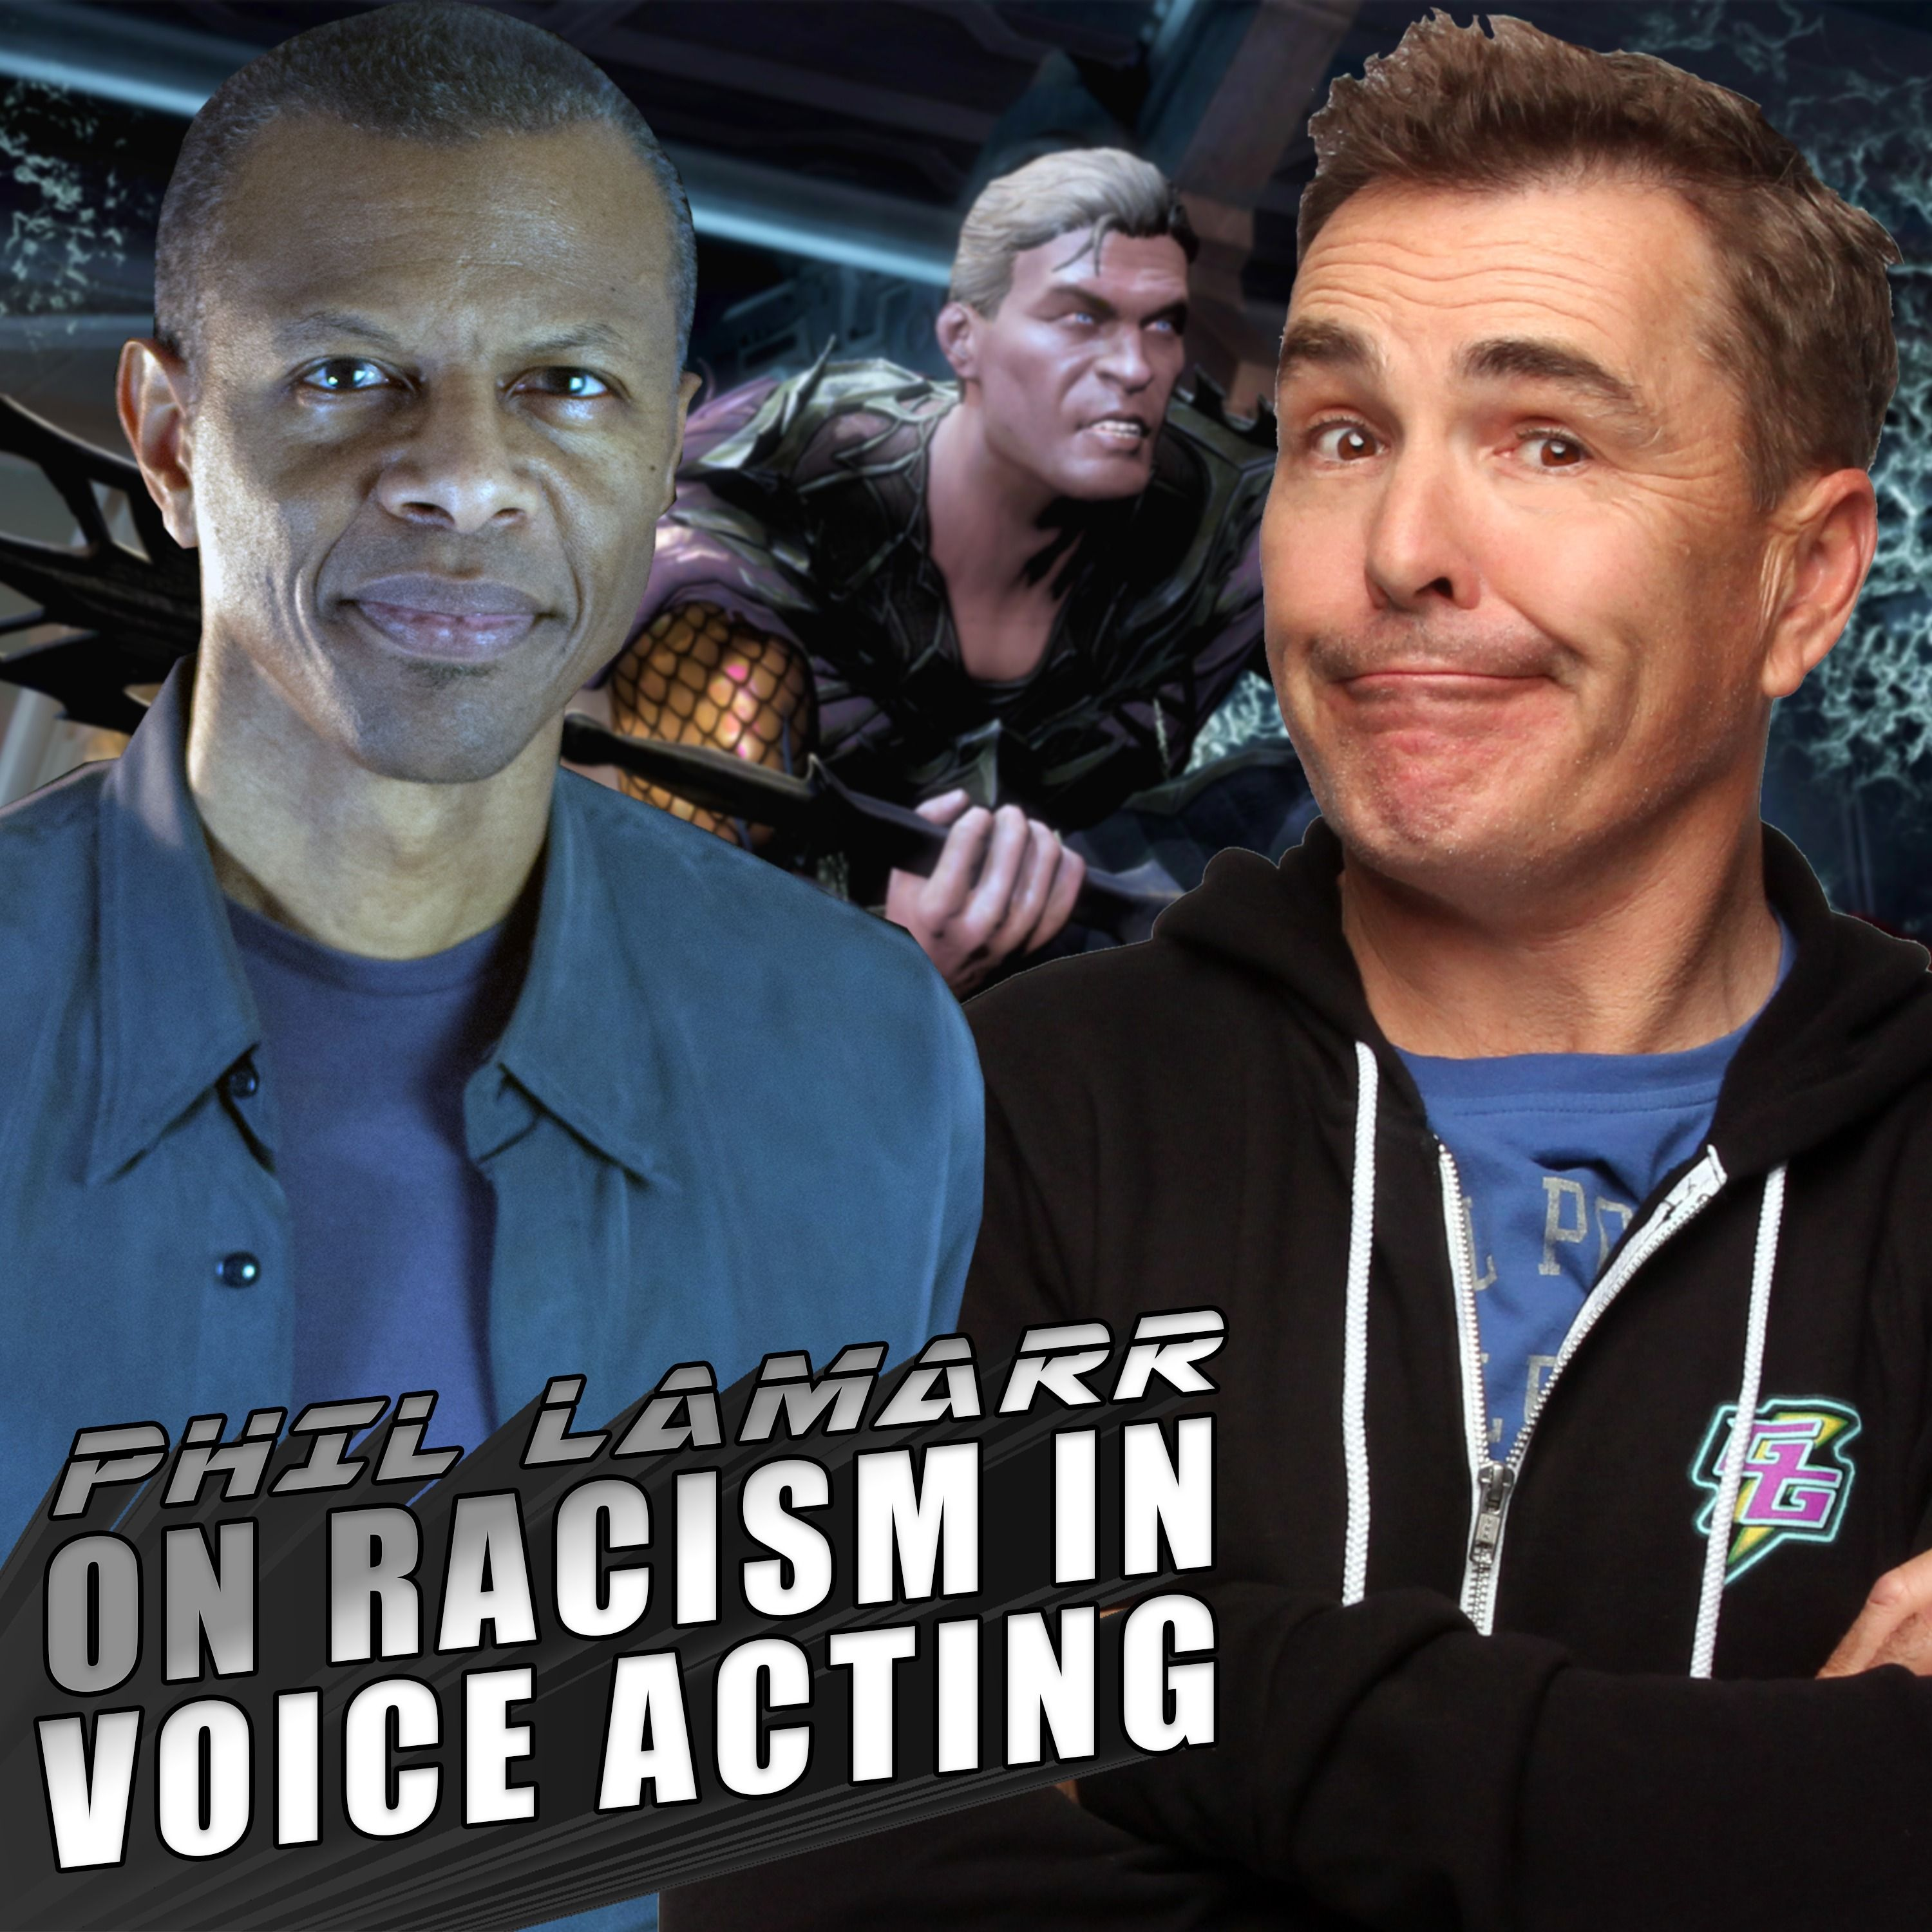 Phil LaMarr on Racism in Voice Acting | RETRO REPLAY